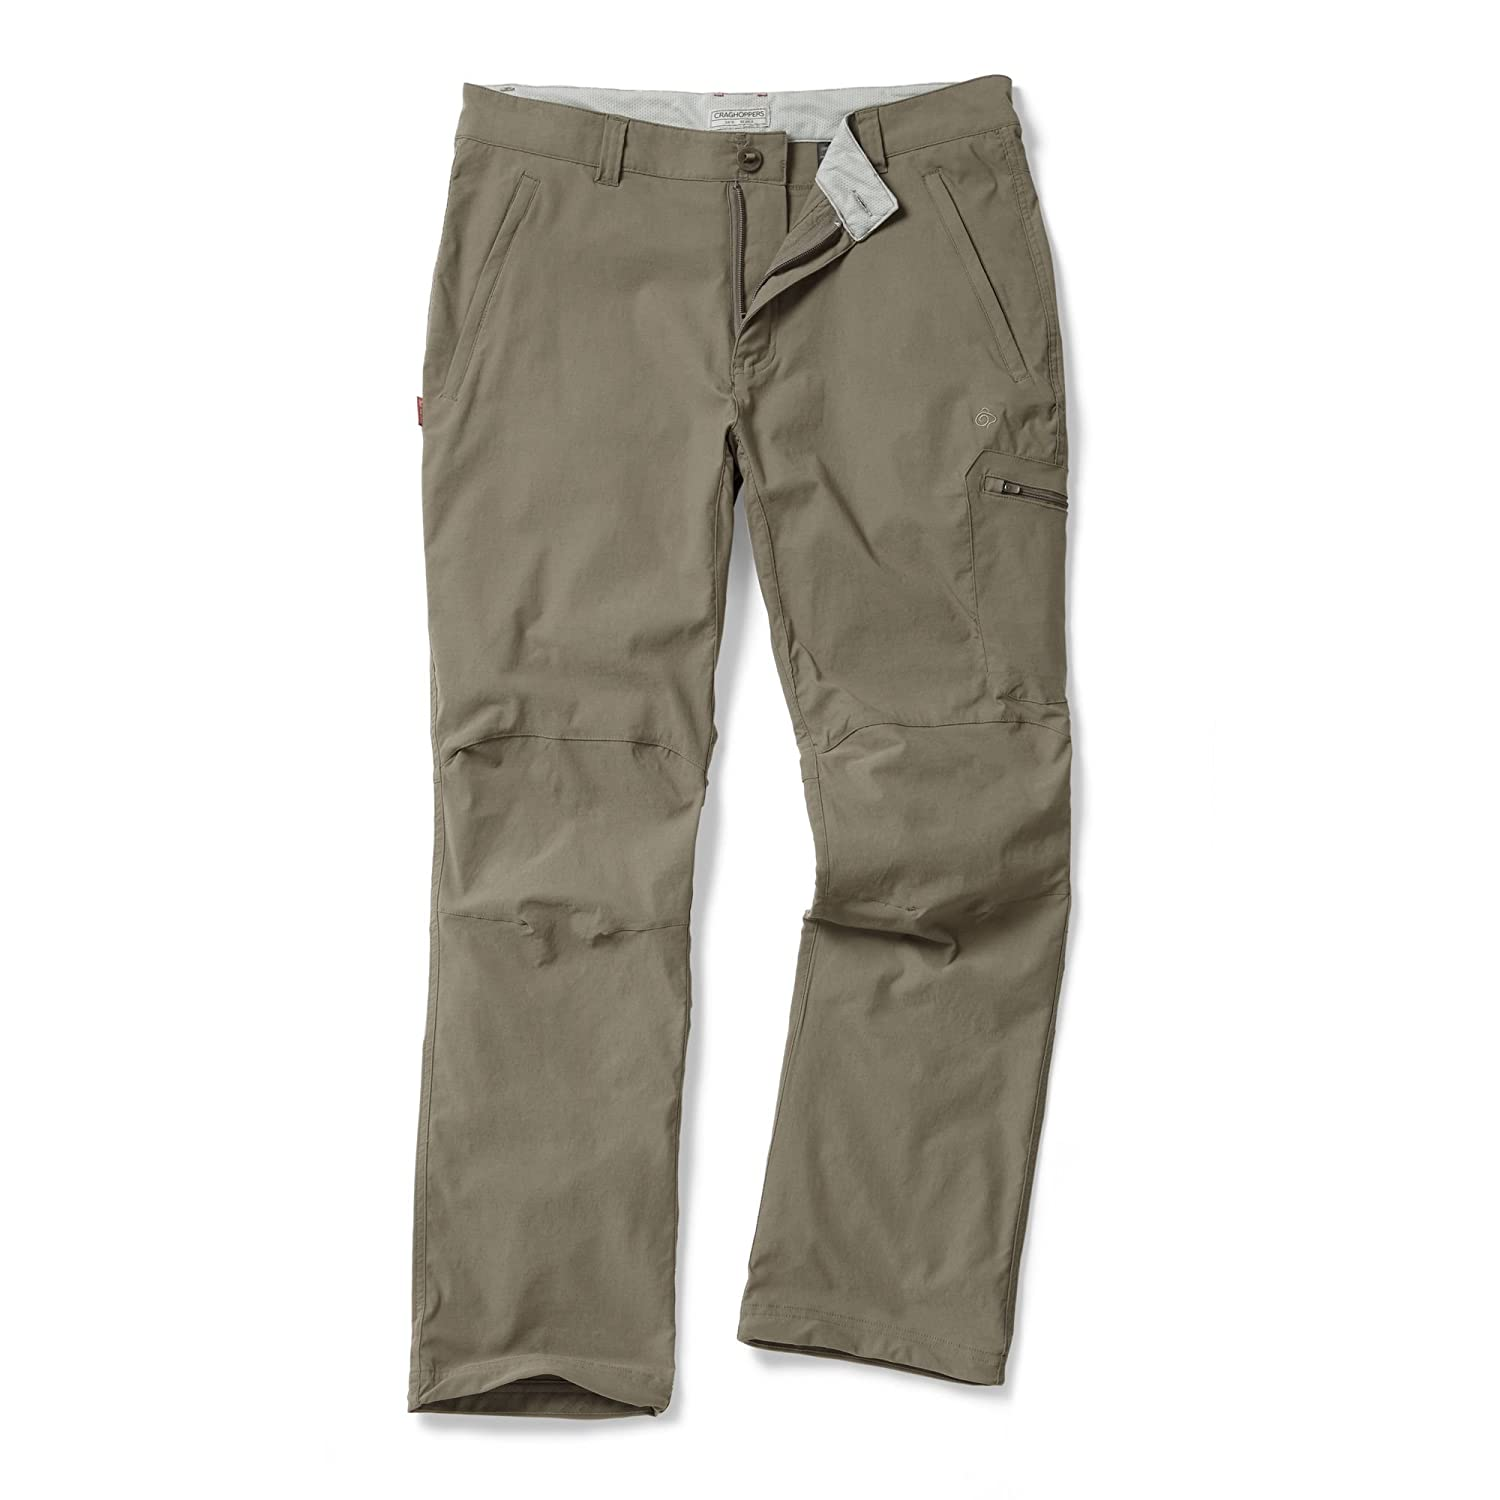 Craghoppers NosiLife Pro Hose Men - Outdoorhose